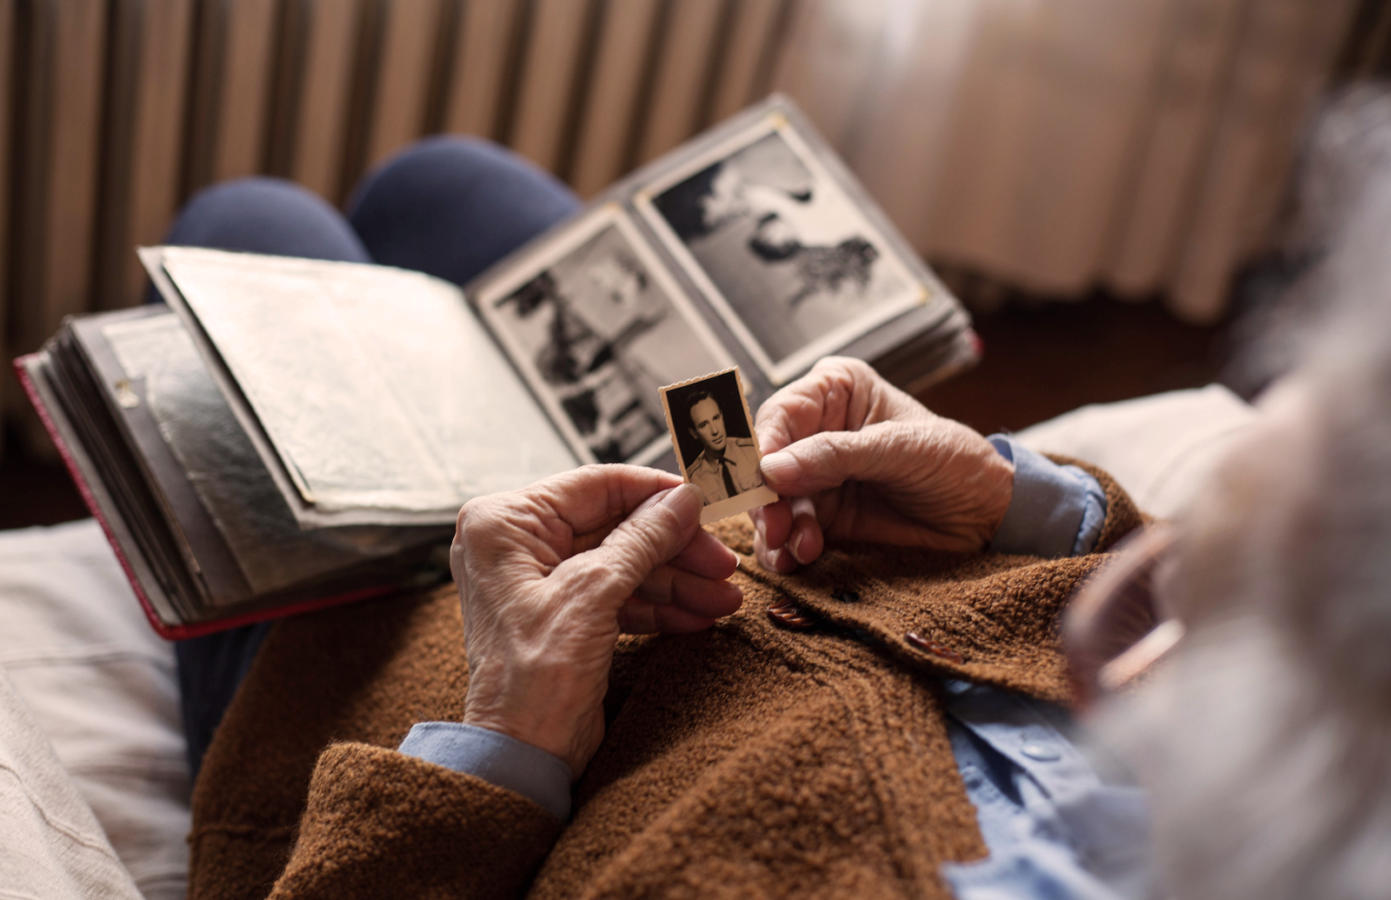 Senior adult woman looking at an old photo of her husband.